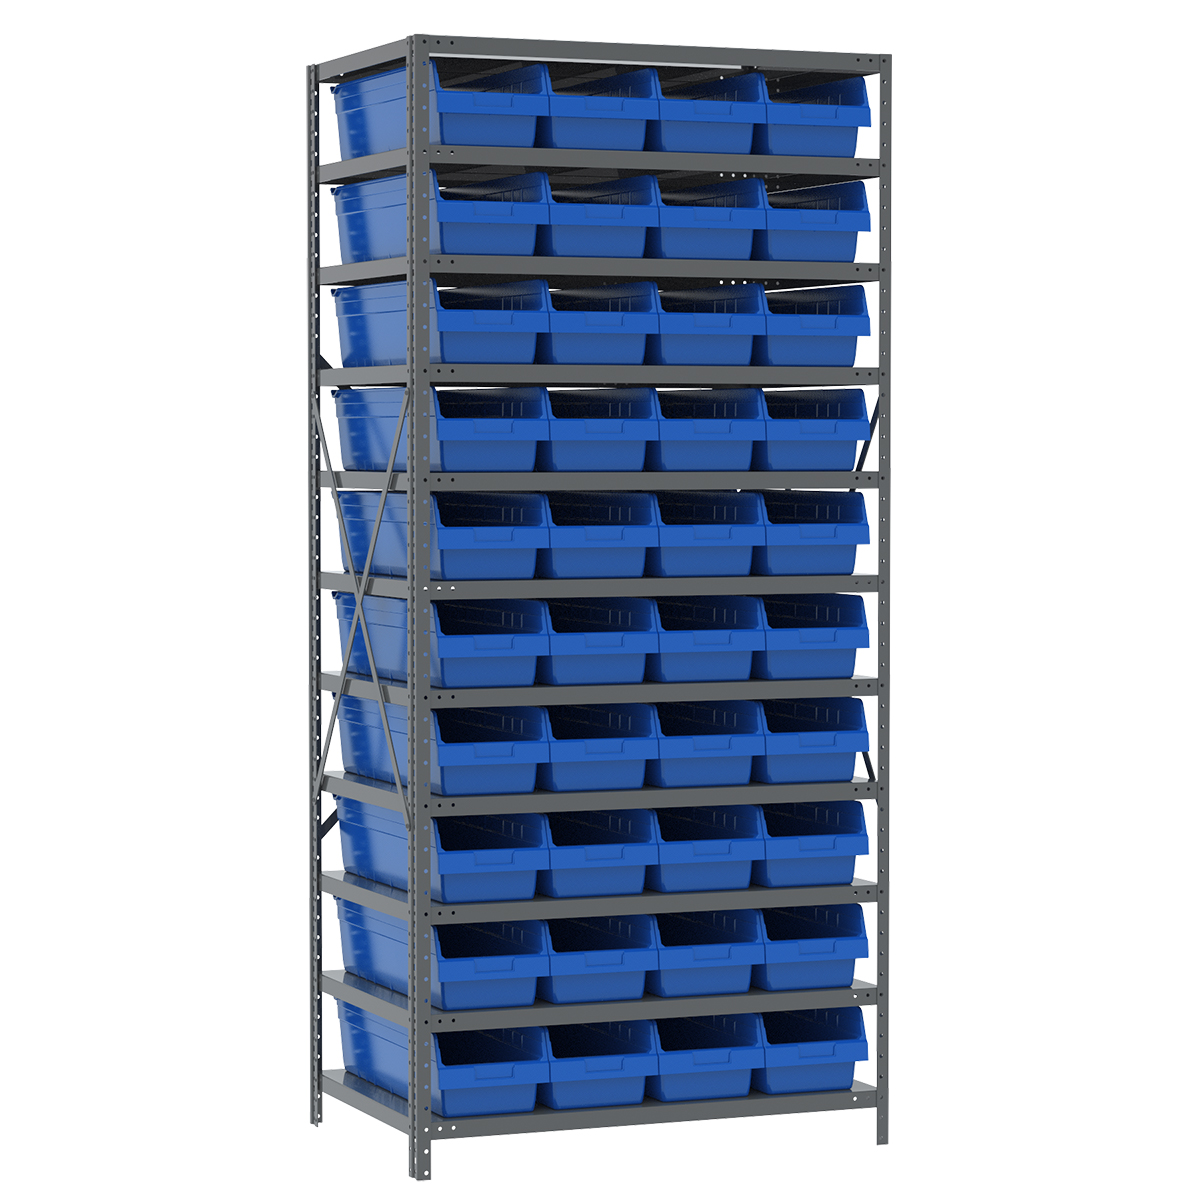 Steel Shelving Kit, 24x36x79, 42 Bins, Gray/Blue.  This item sold in carton quantities of 1.